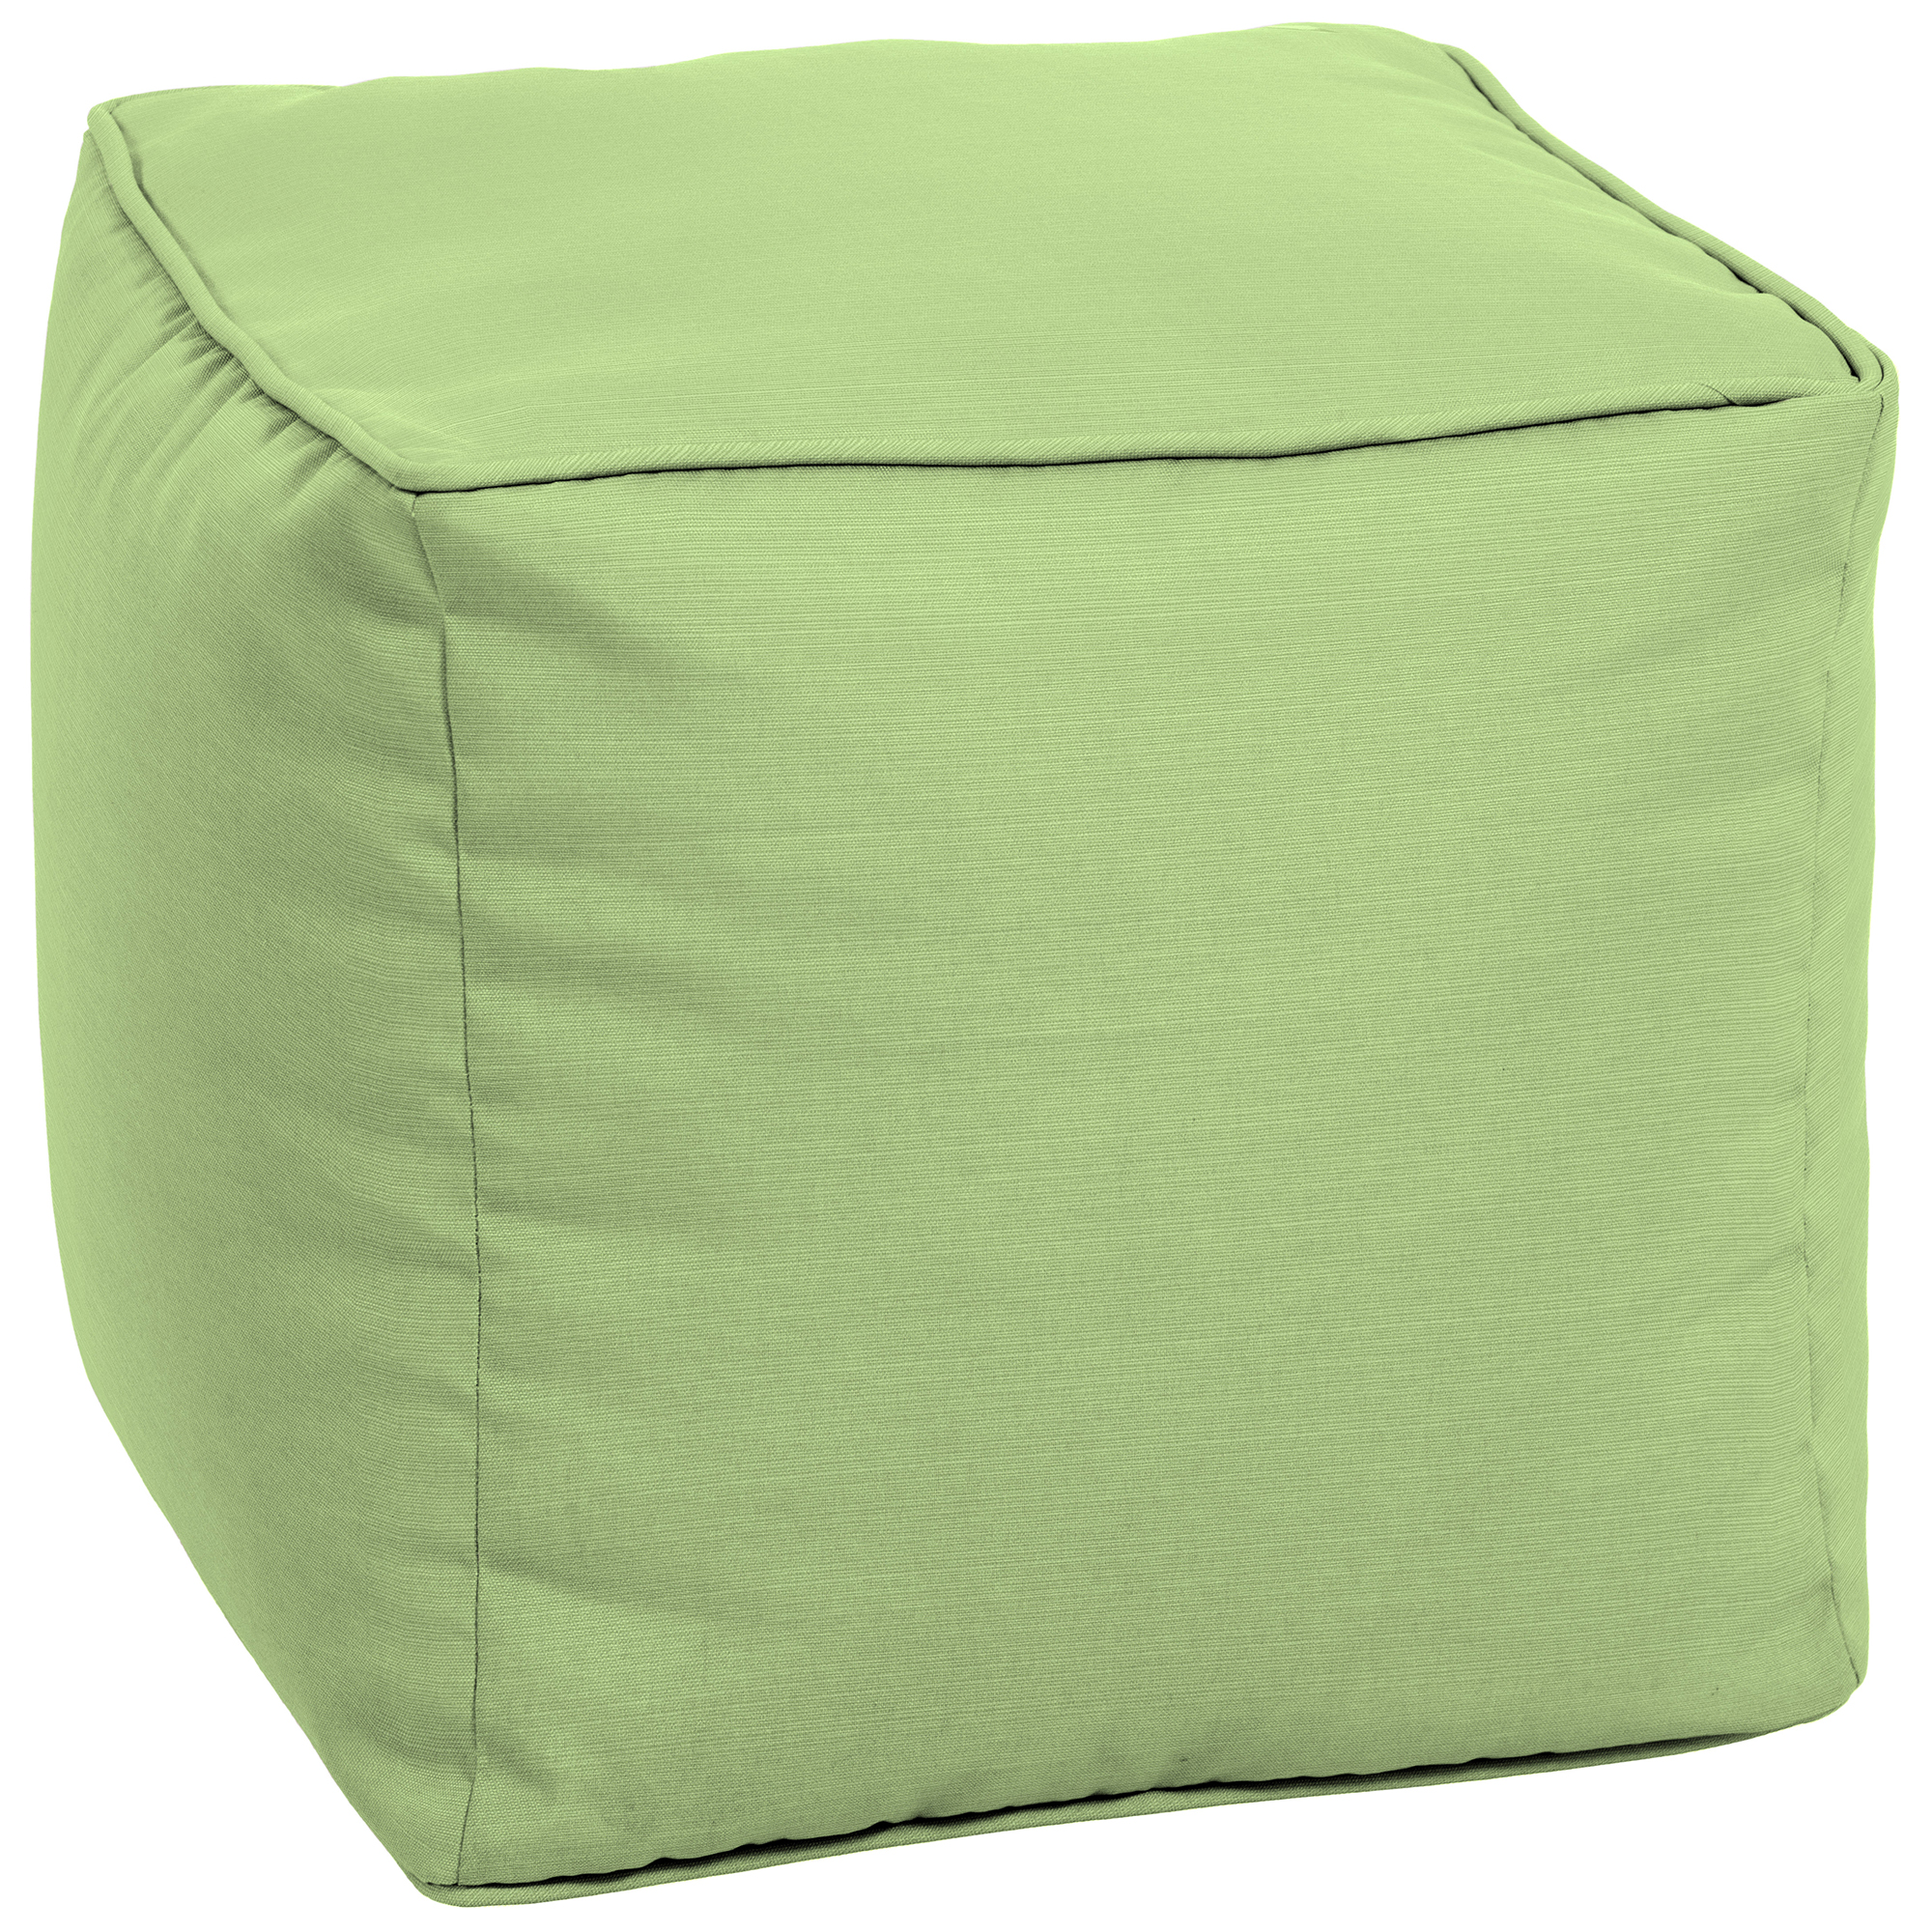 Pouf Mint Better Homes Gardens Mint Sage Outdoor 17